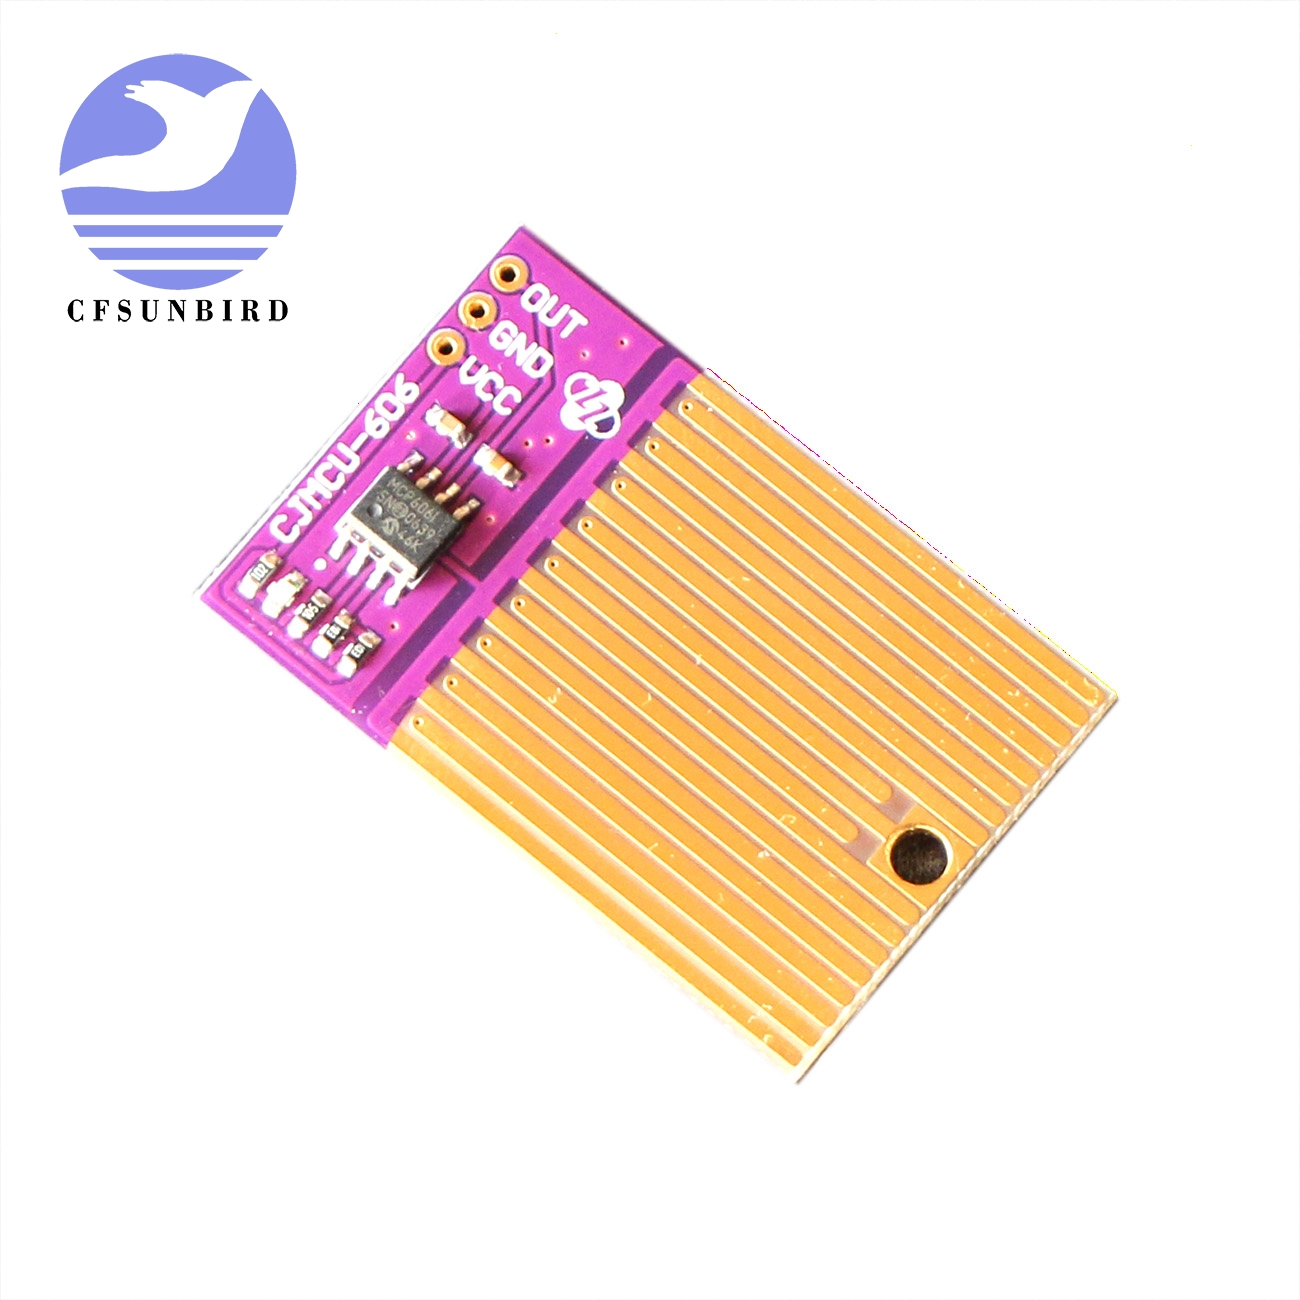 Electronic Components & Supplies Cfsunbird Rainwater Drop Detector Conductive Liquid Sensor Water Tank Pump Limit Switch To Ensure A Like-New Appearance Indefinably